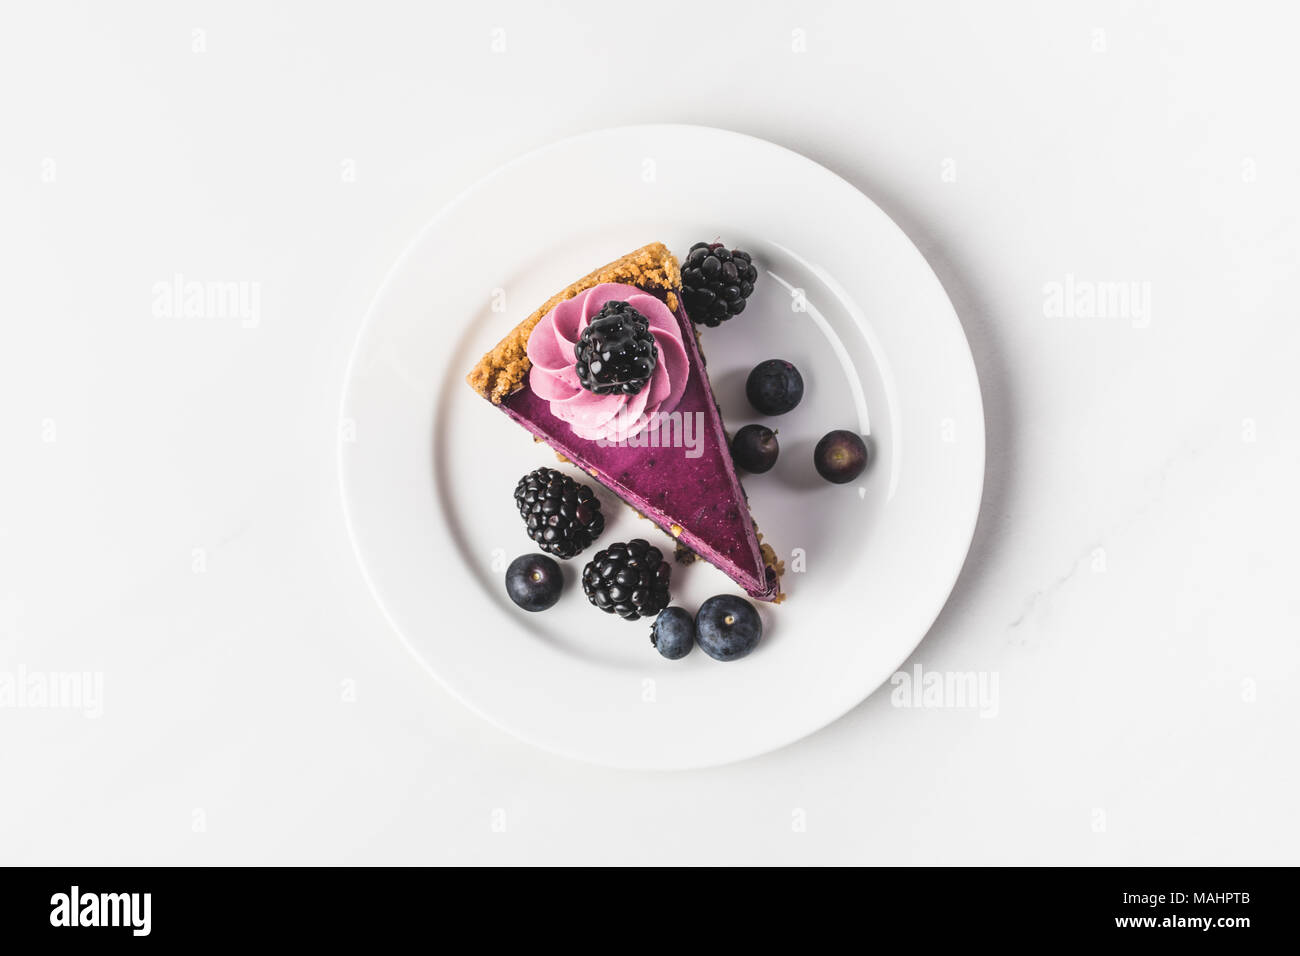 top view of blueberry cake with fresh berries on plate isolated on white - Stock Image